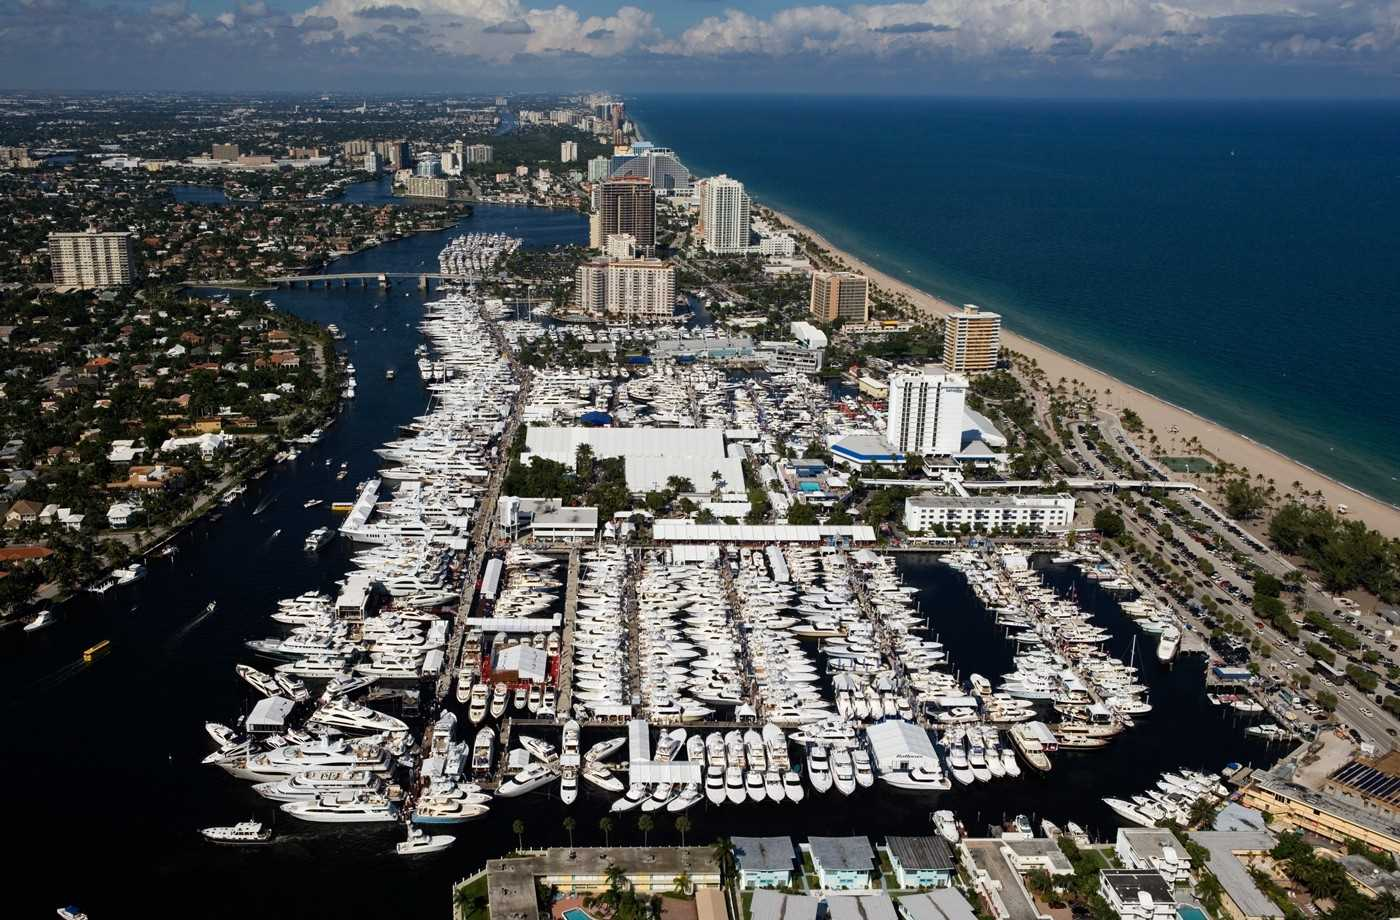 Ft Laud Boat Show in November is just a mile away.